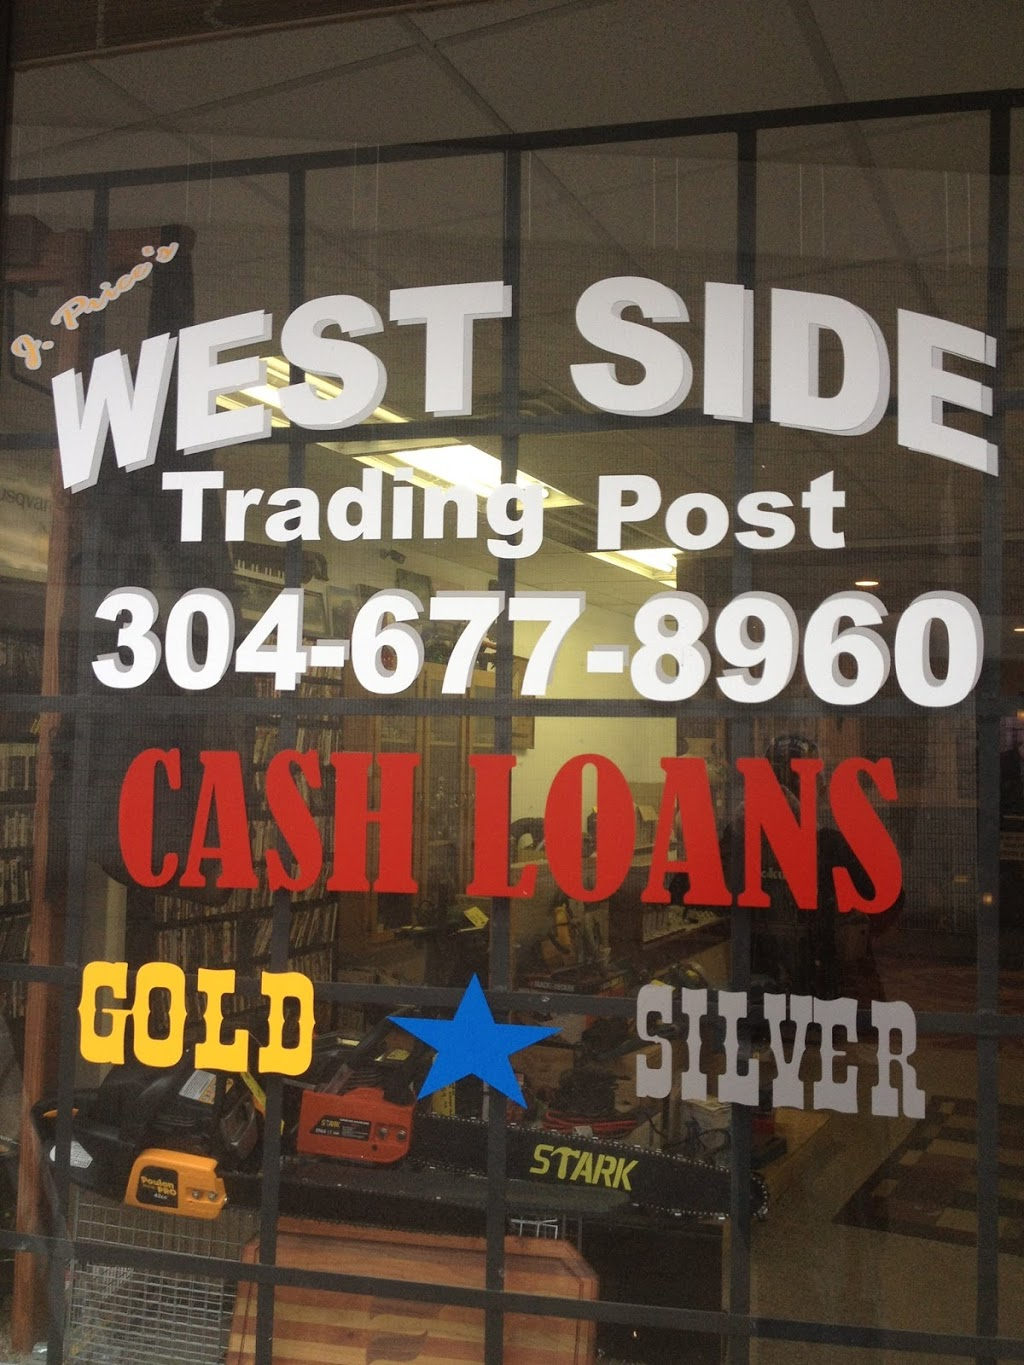 Cash advance in richmond kentucky image 7